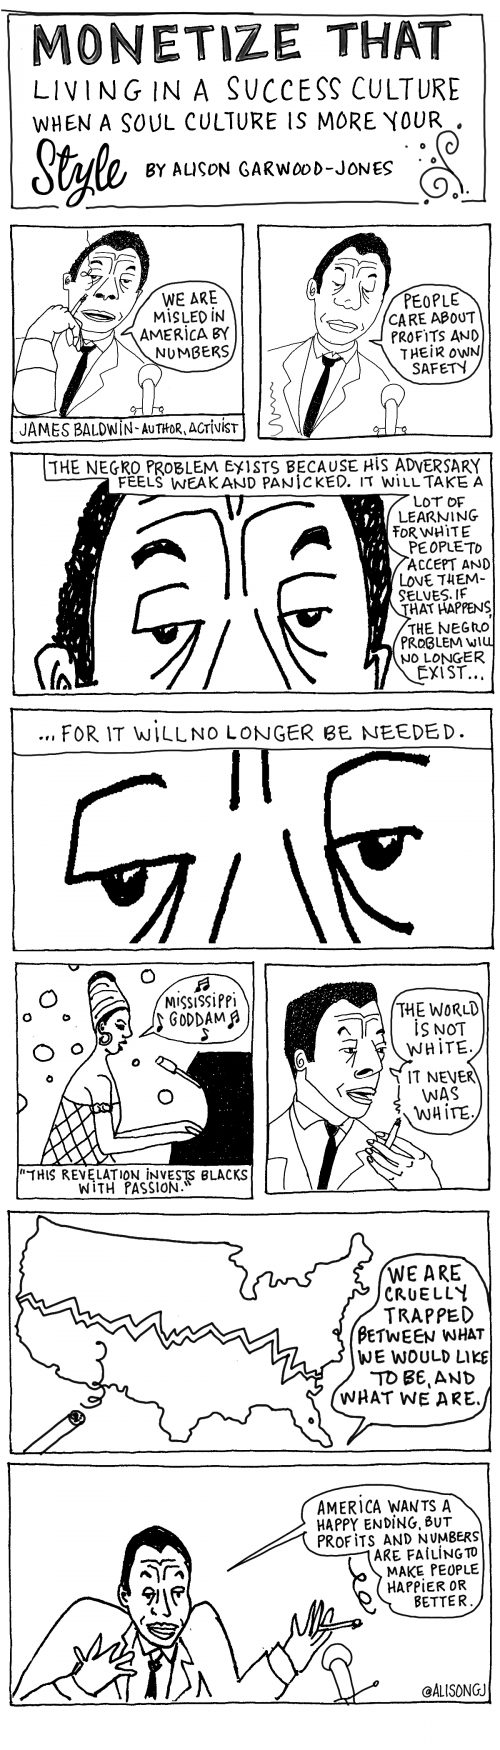 James Baldwin cartoon by Alison Garwood-Jones